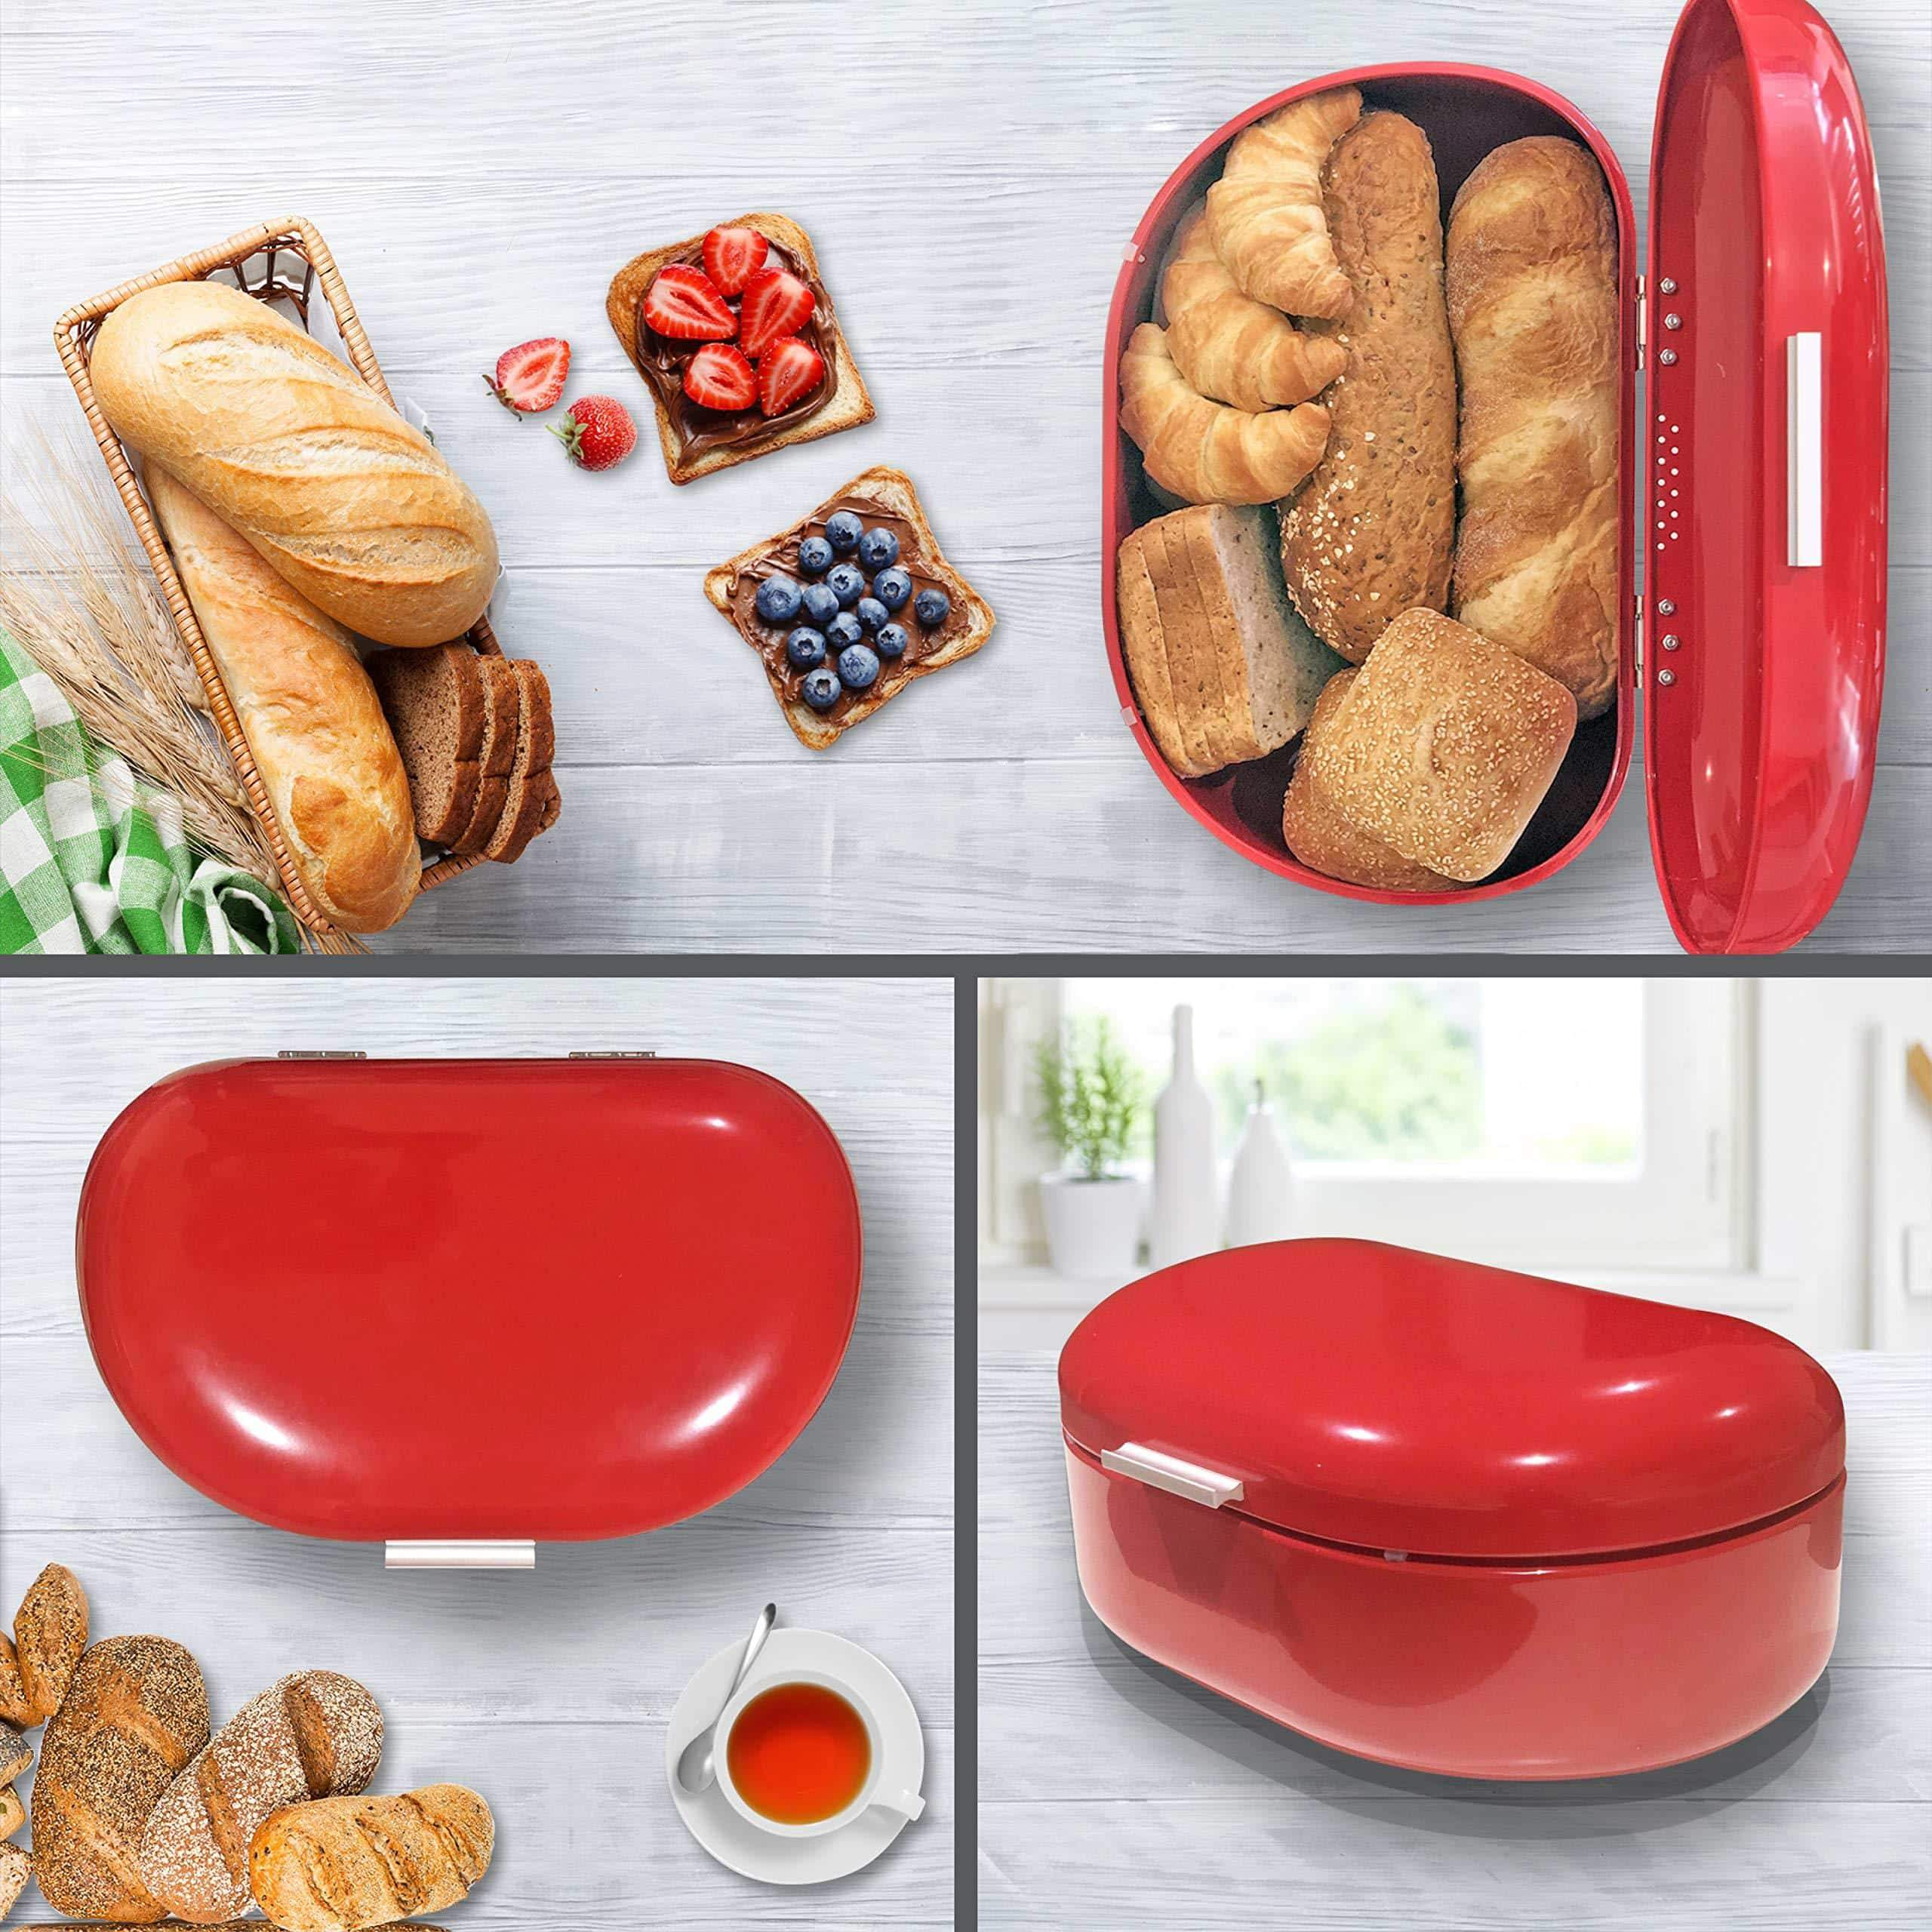 New bread box red carbon steel large capacity sturdy metal food storage containers and bread boxes for kitchen counters retro countertop breadbox for loaves 15 7 x 10 8 x 7 inches